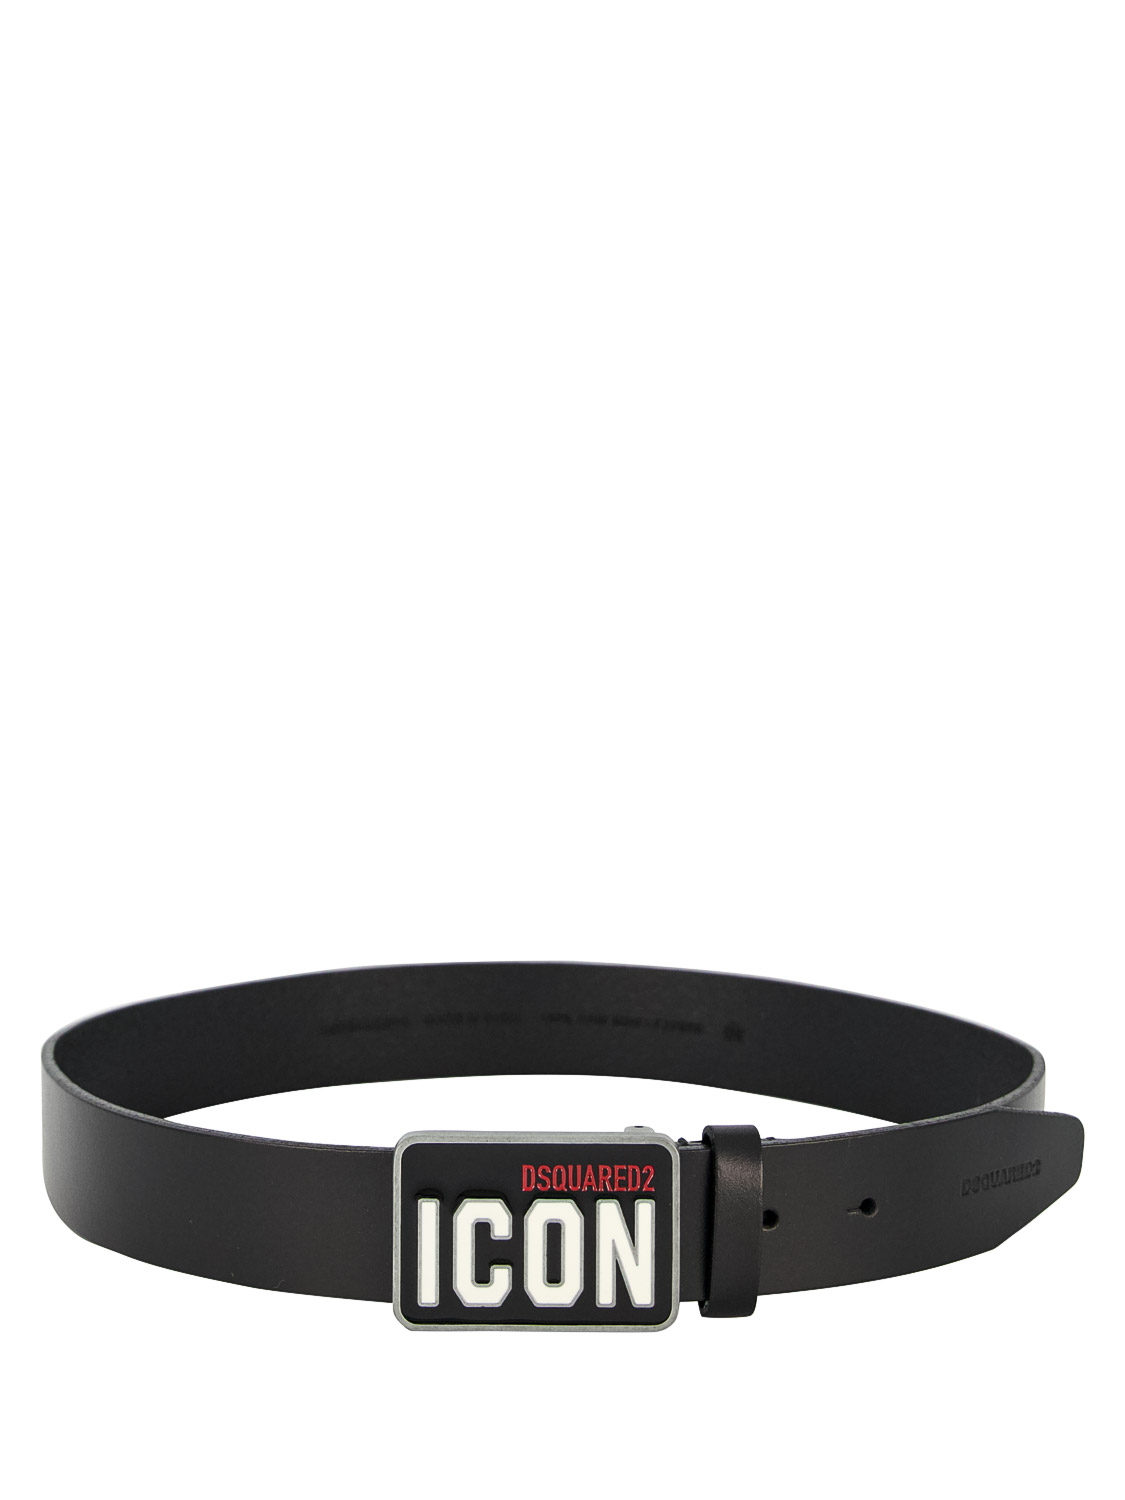 Dsquared2 KIDS BELT FOR FOR BOYS AND FOR GIRLS